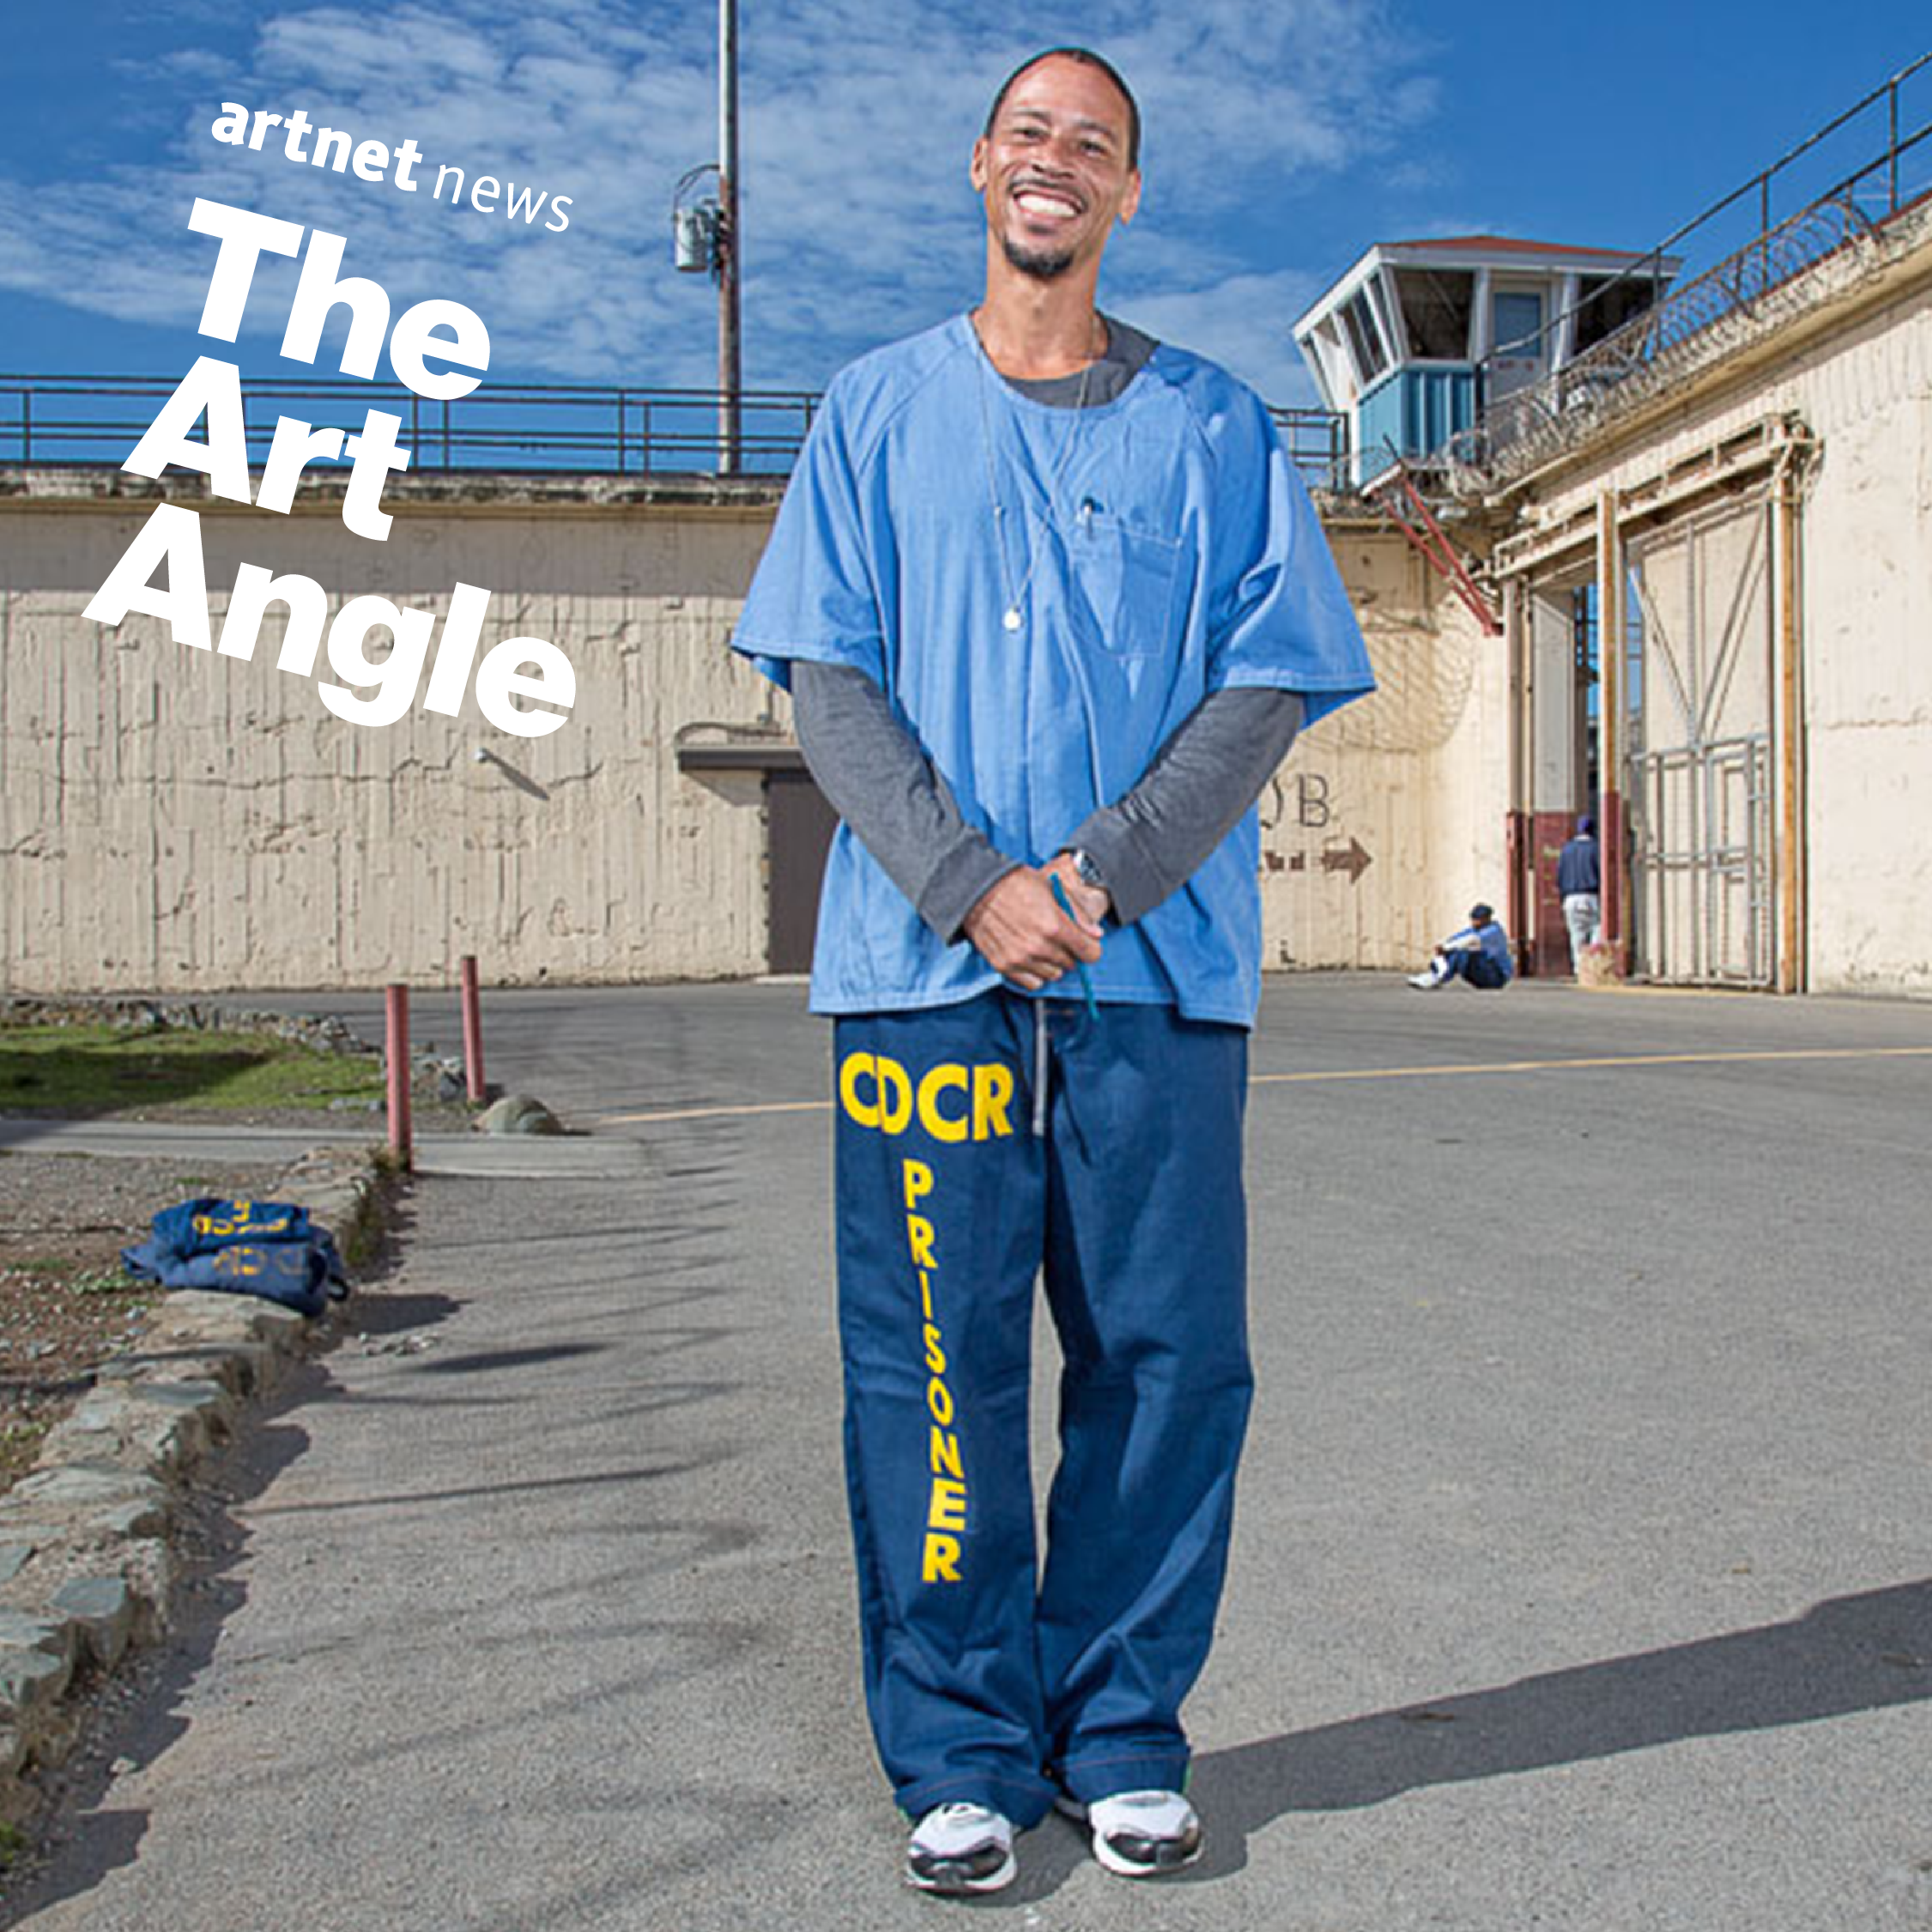 The Art Angle Podcast: Can Art Help End the Era of Mass Incarceration?